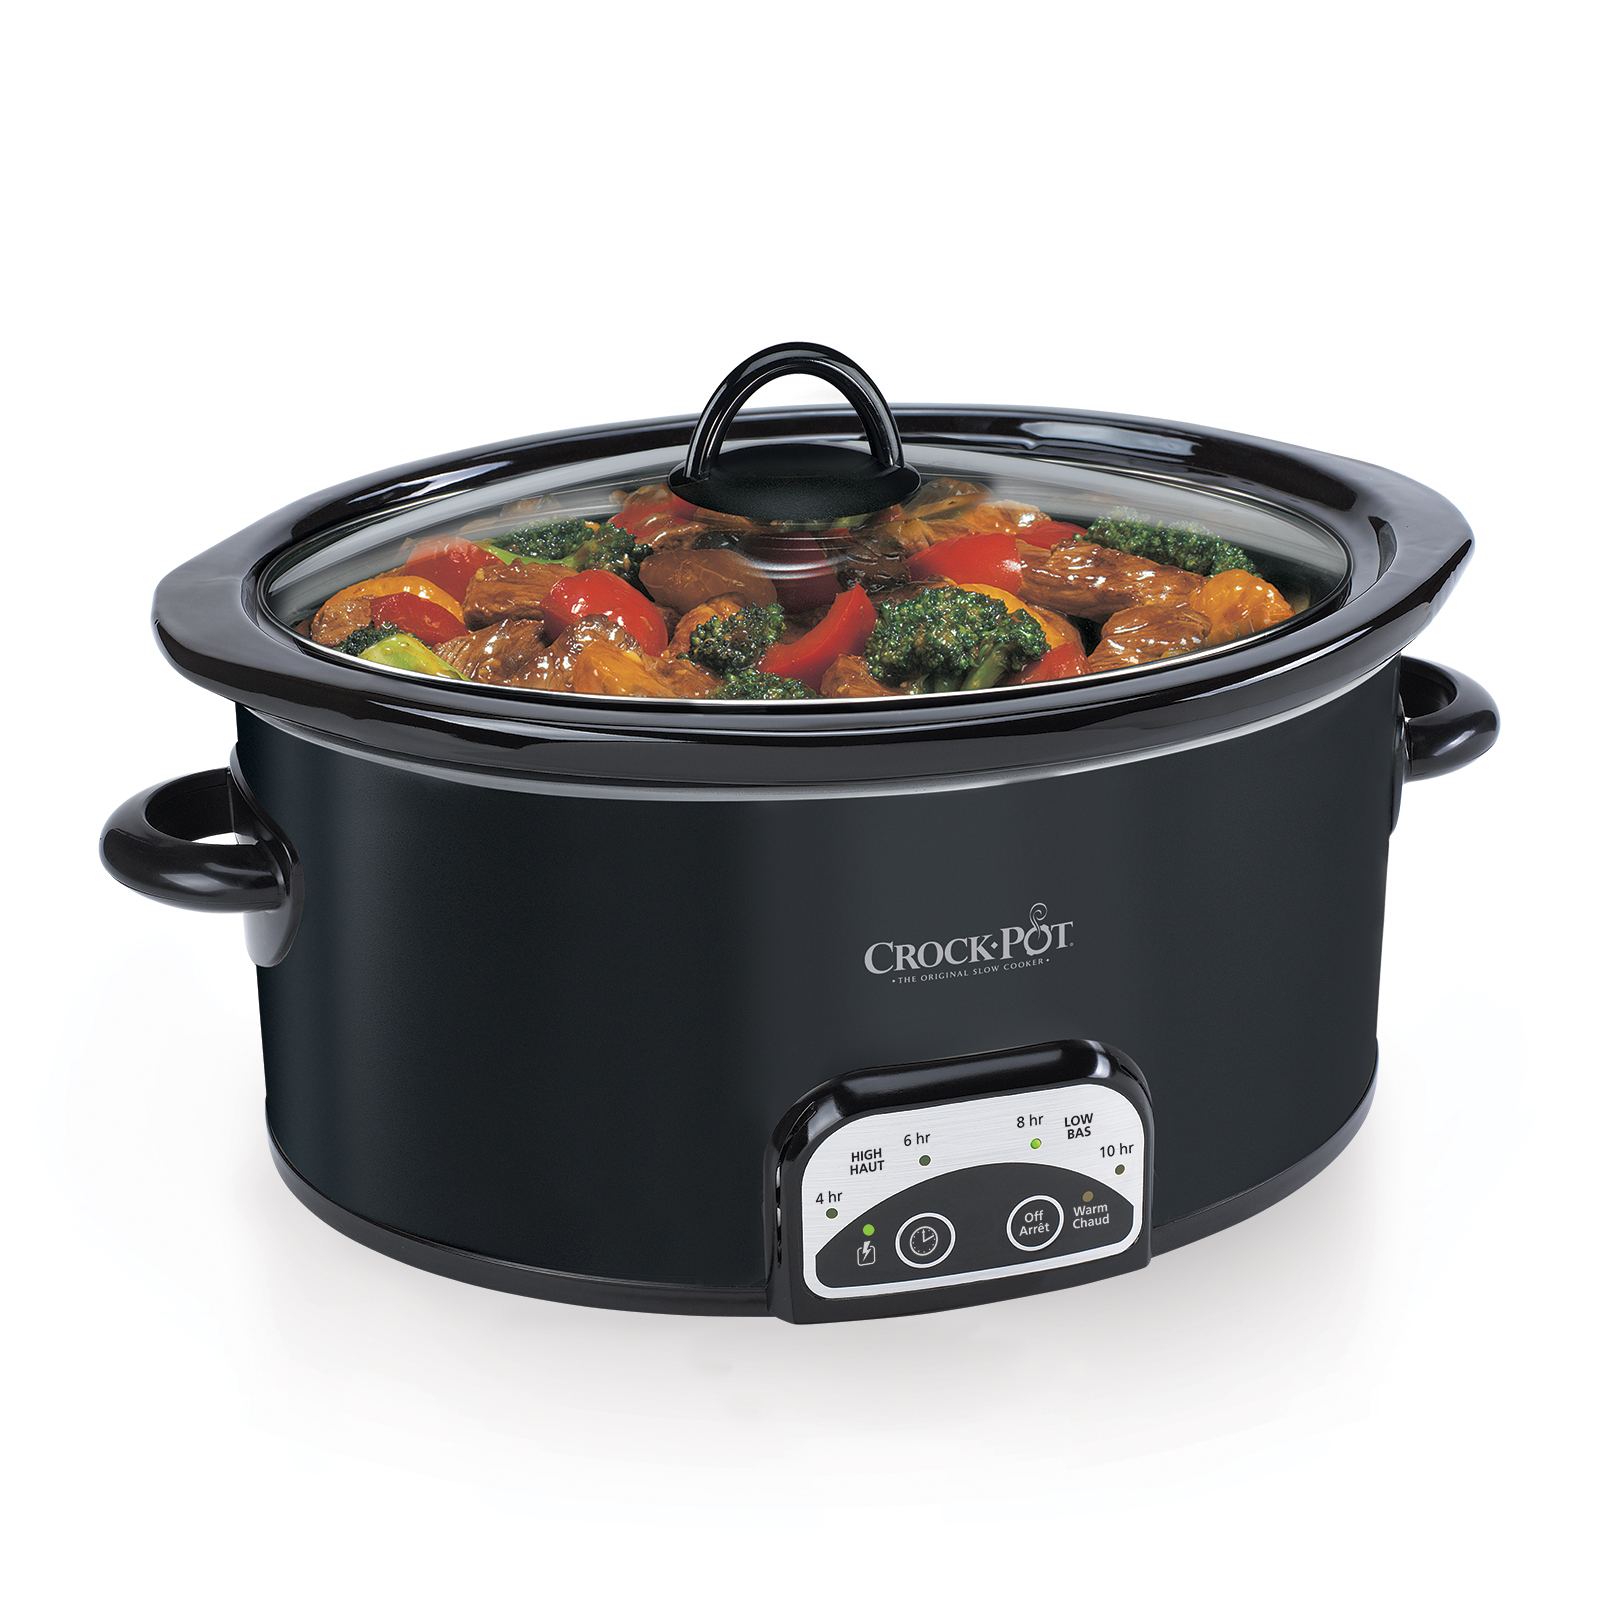 Crock-Pot 4-Quart Smart-Pot Slow Cooker (SCCPVP400-B)